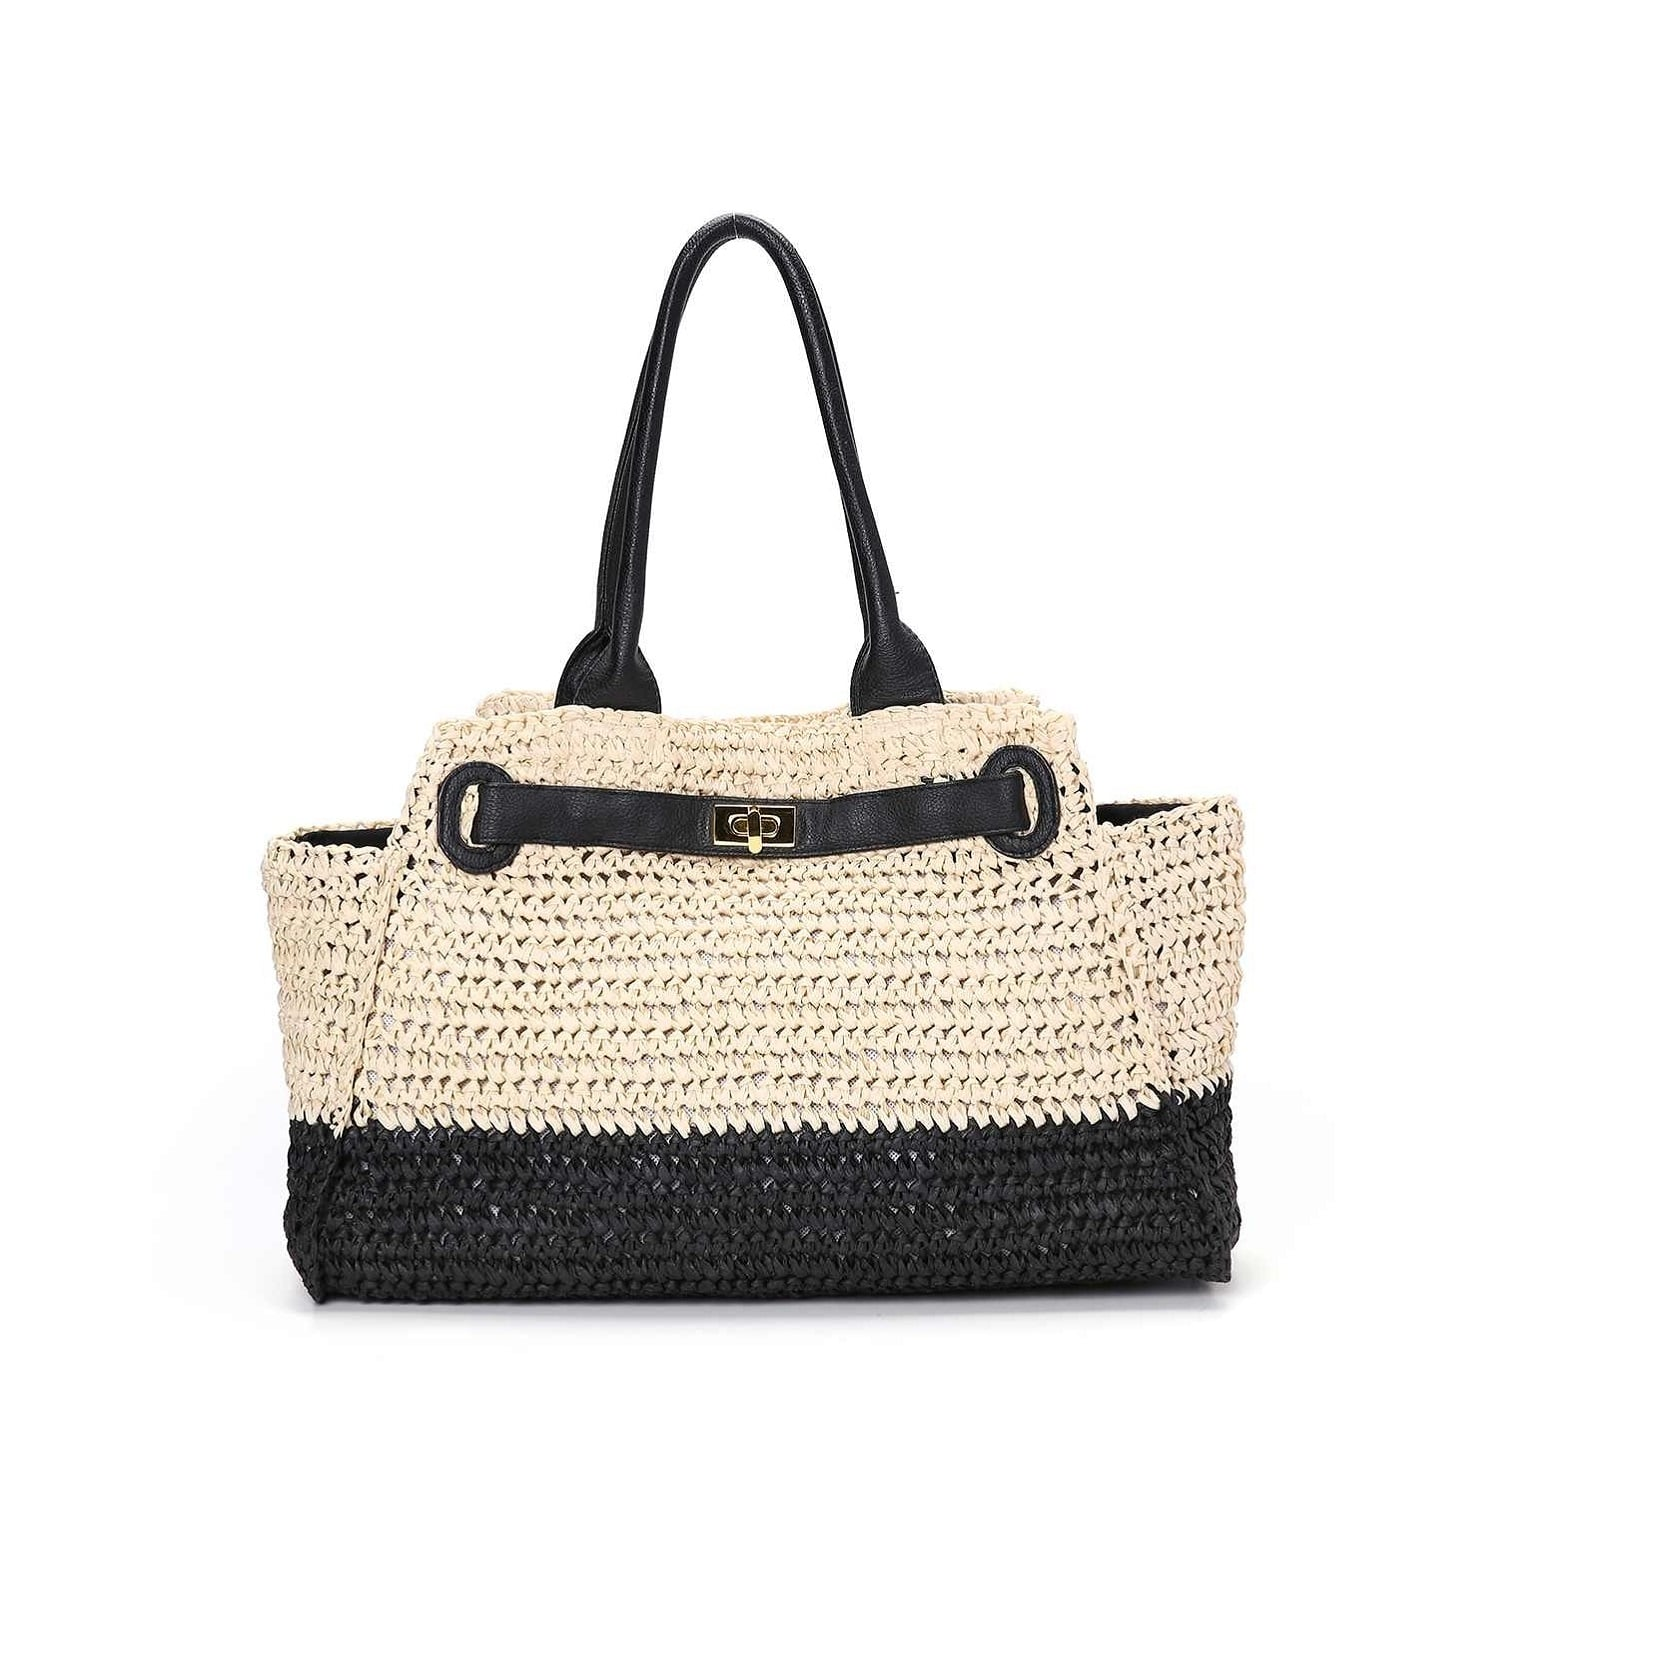 Quality wicker bag